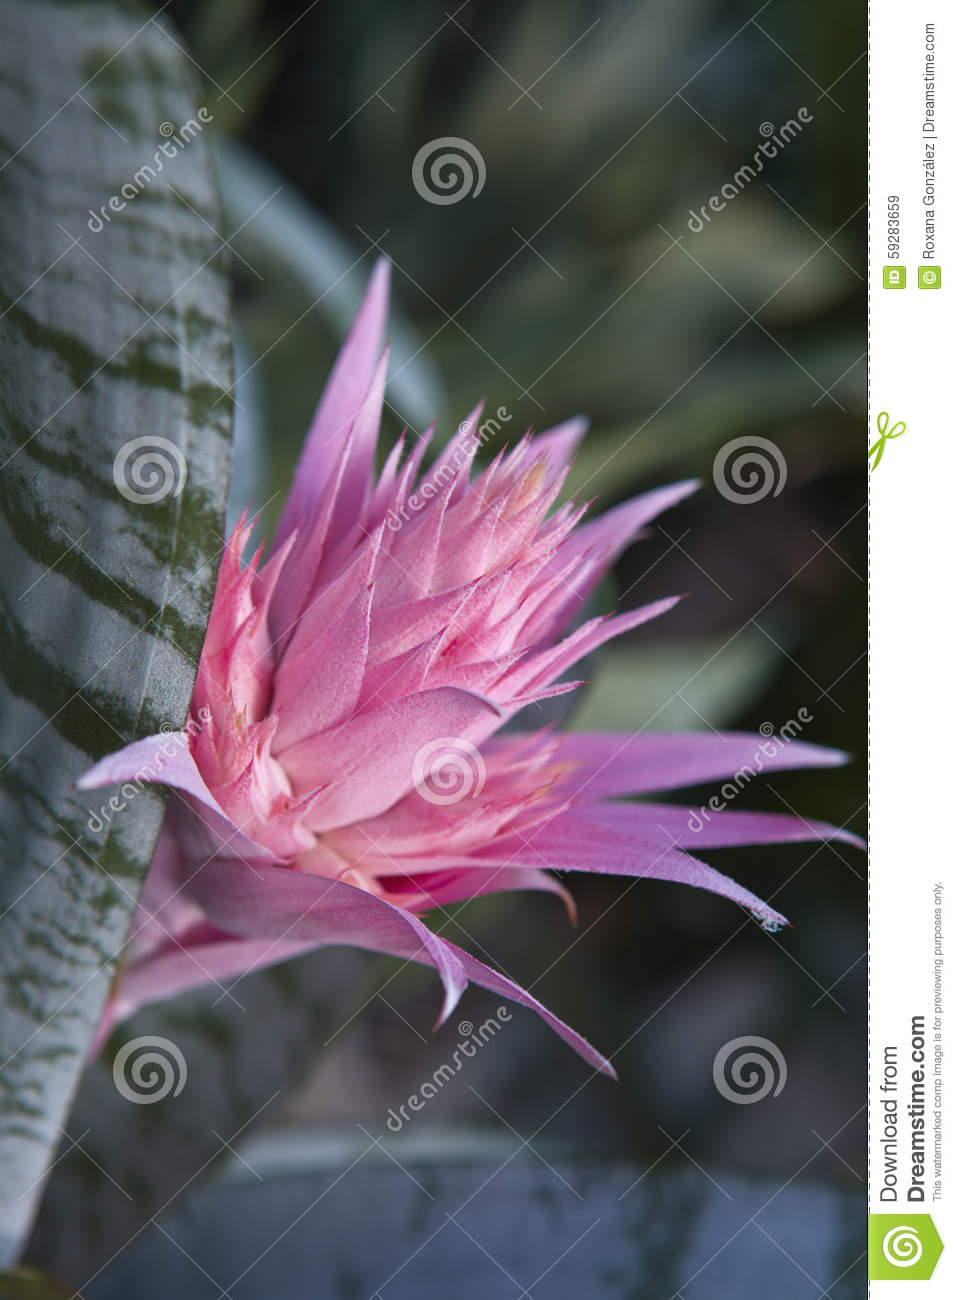 Silver Vase Bromeliad Stock Photo Image 59283659